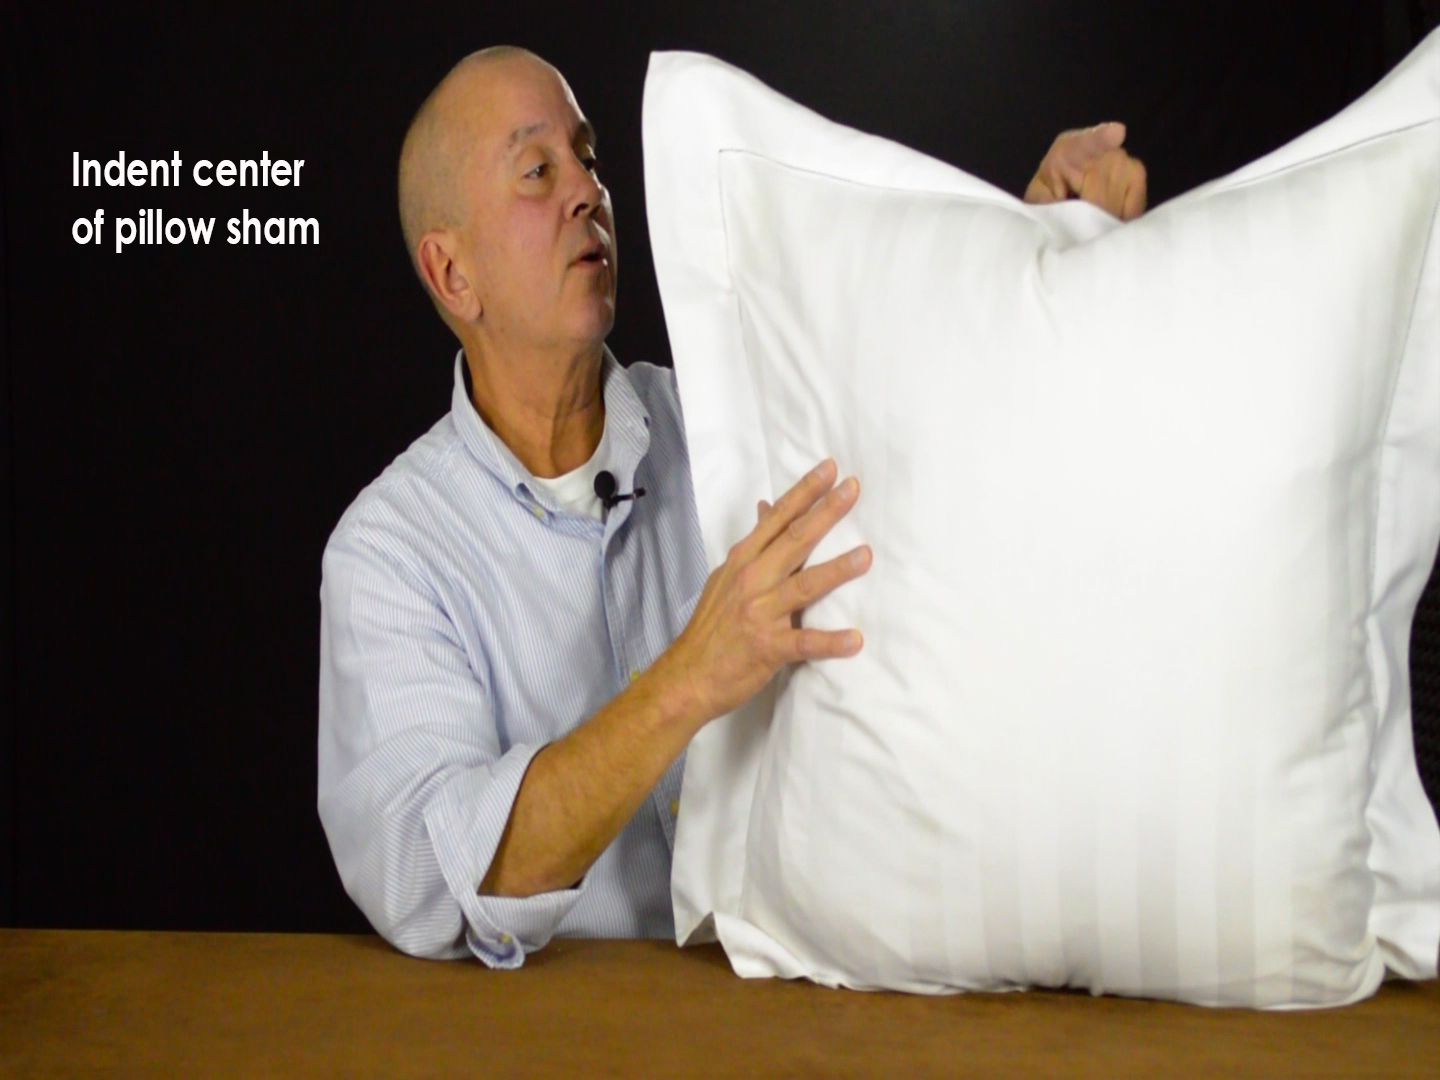 If necessary indent the center of the pillow at the top edge